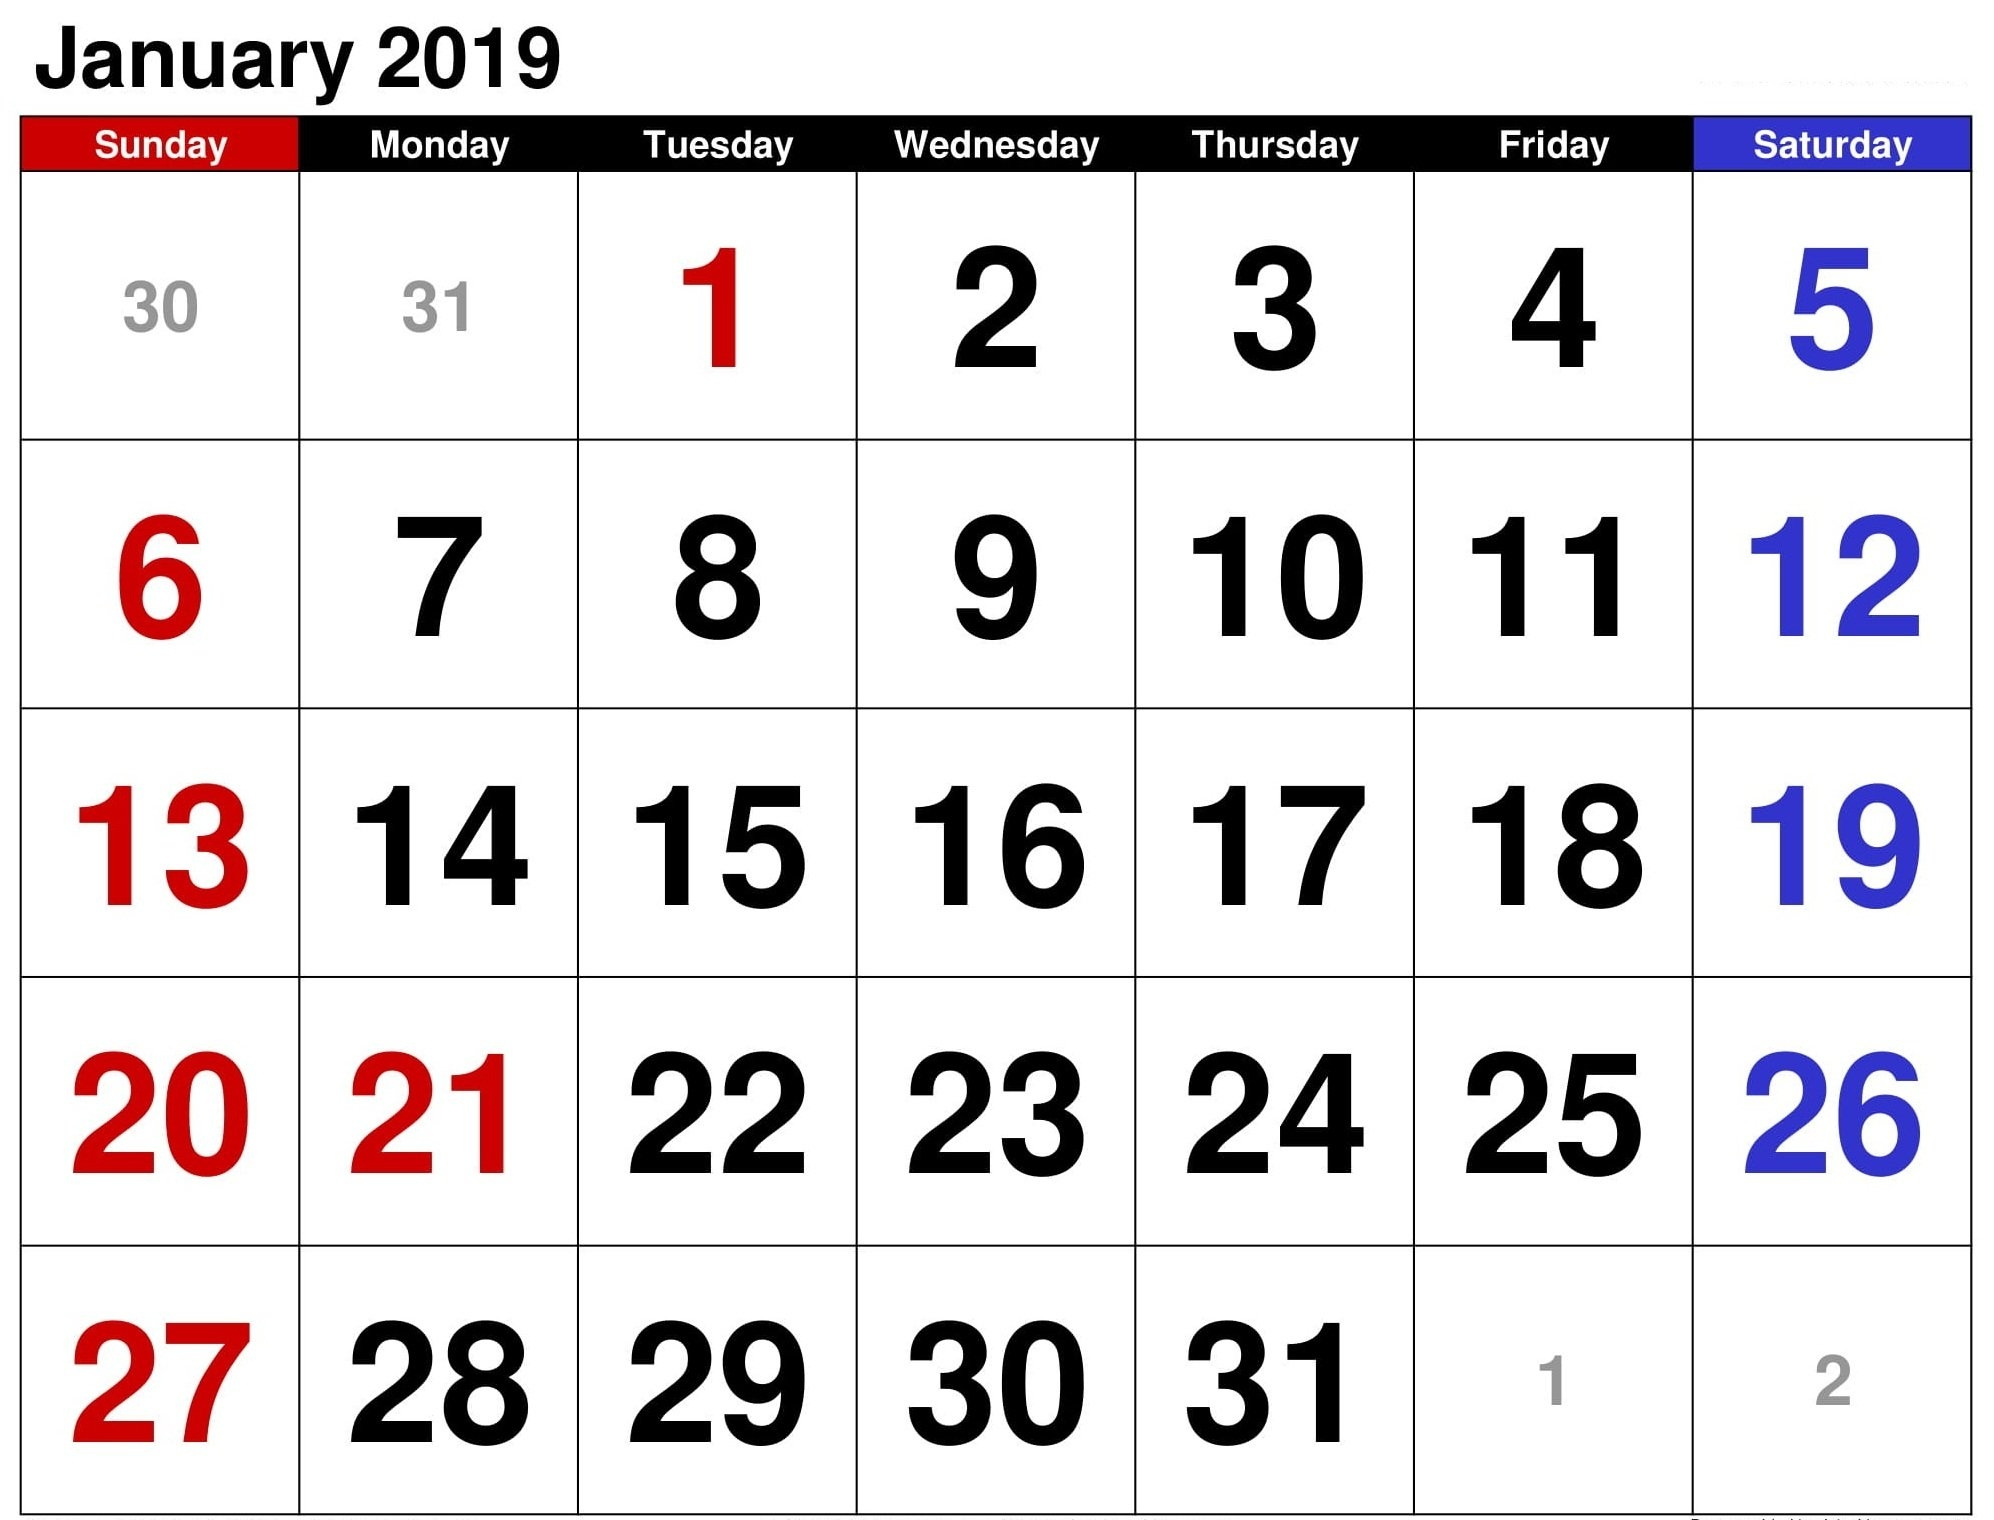 January Bank Holidays 2019 Calendar – Free Calendar Templates Calendar 2019 Bank Holidays